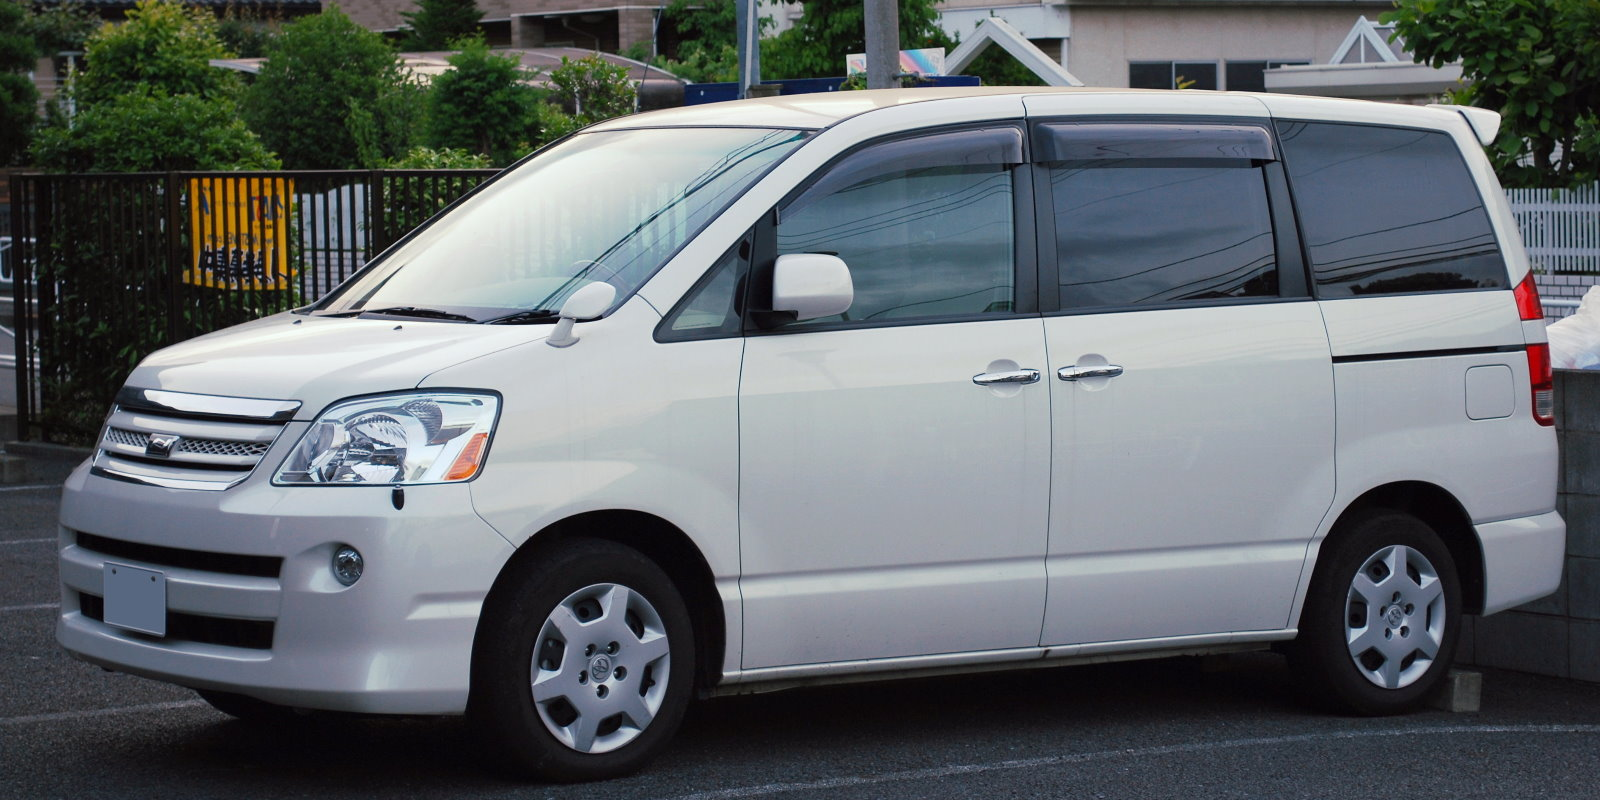 Toyota Wire Wheels moreover Toyota Noah Wikipedia besides 2017 Ford Van as well Mazda Mpv 2003 Engine Diagram furthermore Bmw X5 Alternator Wiring Diagram. on free toyota wiring diagram